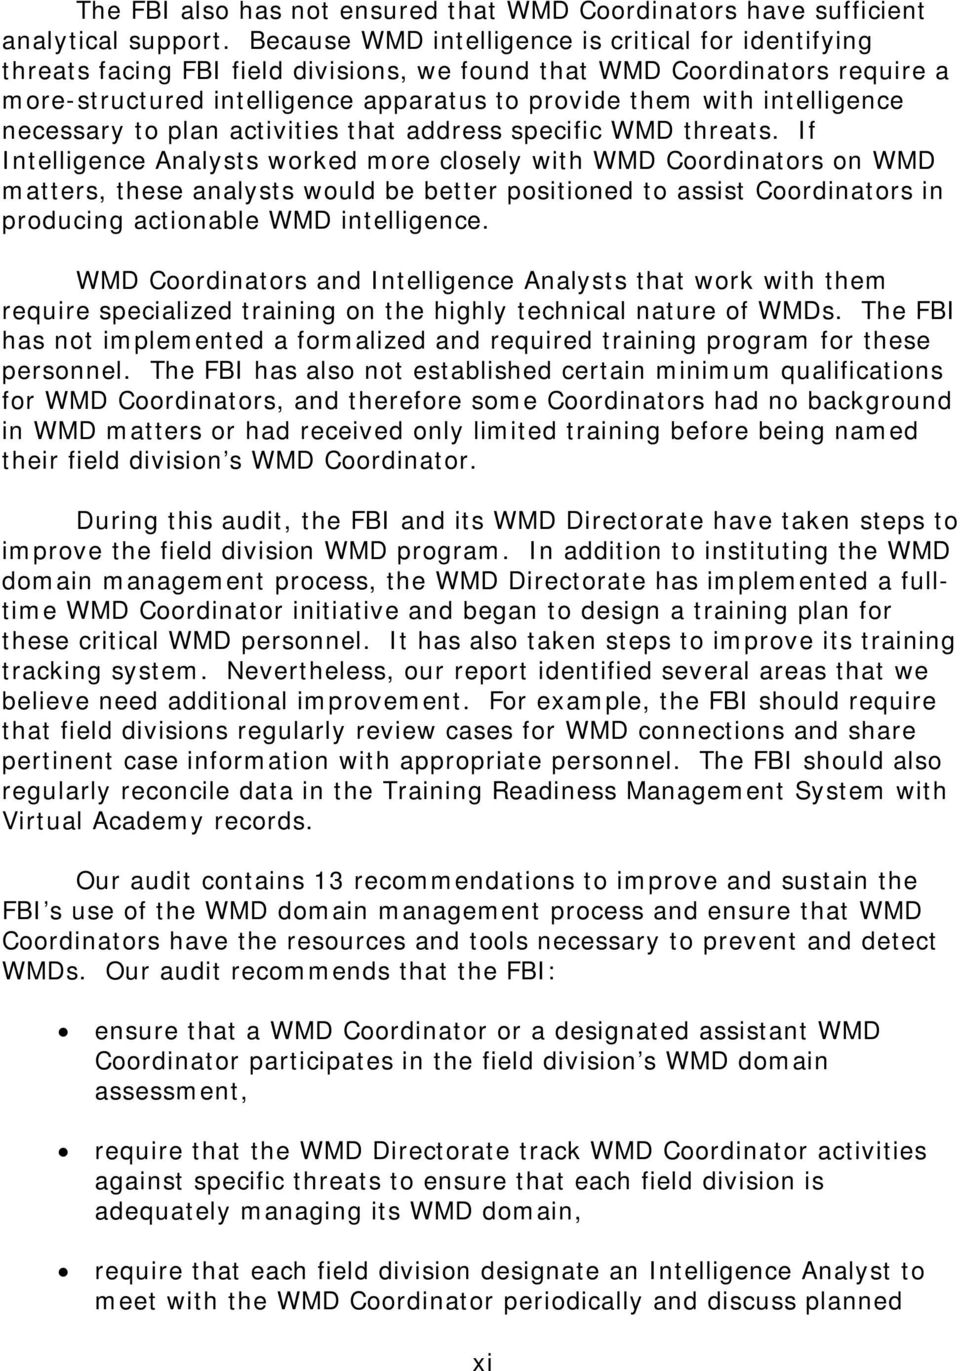 intelligence necessary to plan activities that address specific WMD threats.